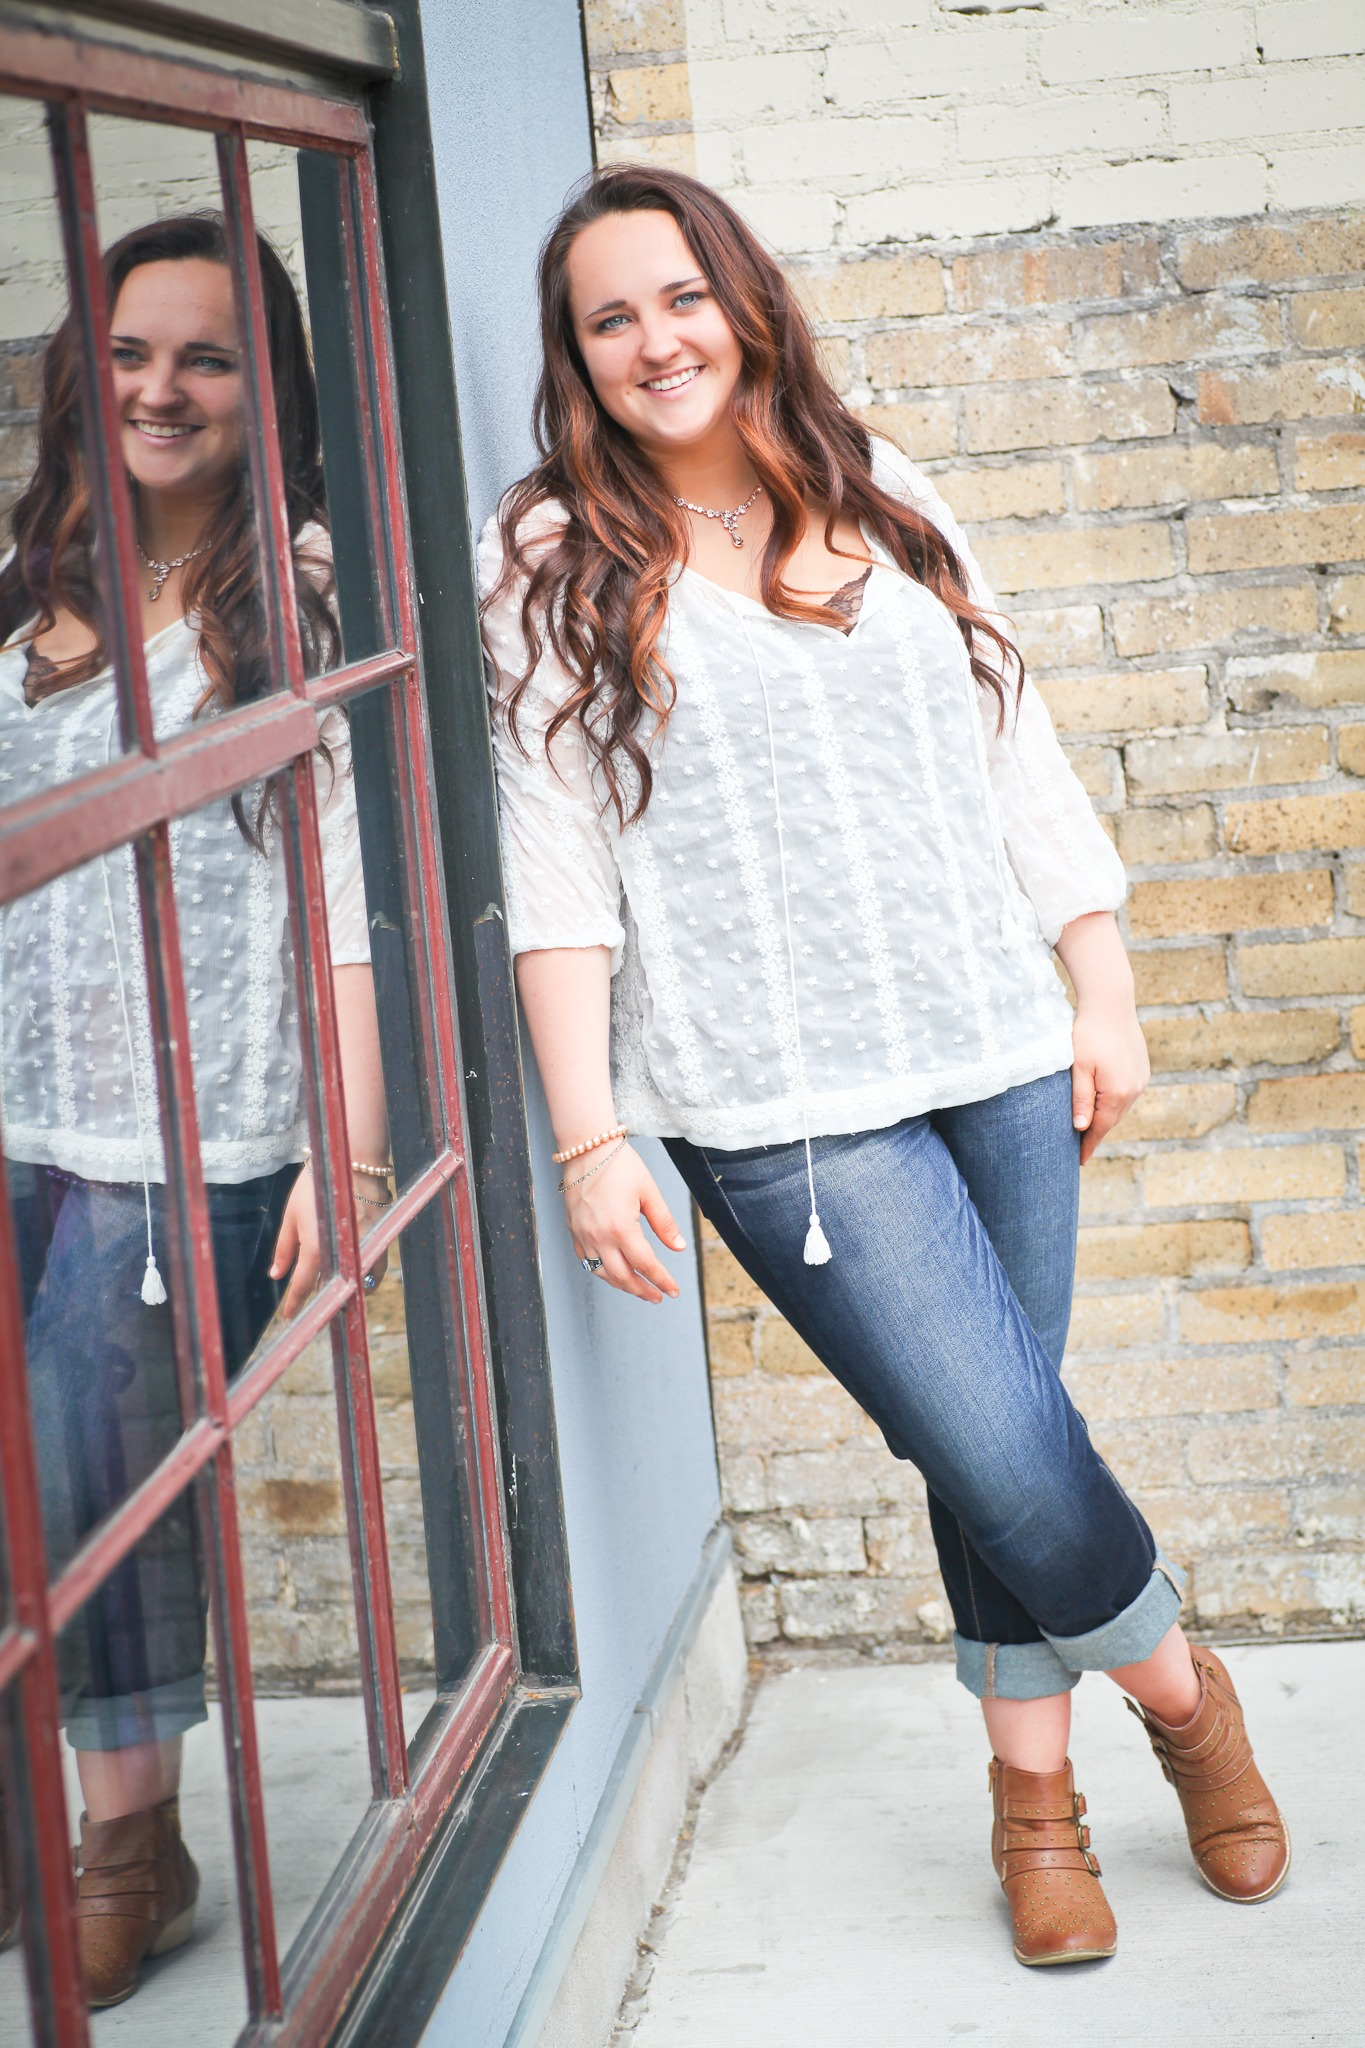 Gracie's Senior Photos in Austin, Texas via @sprittibee